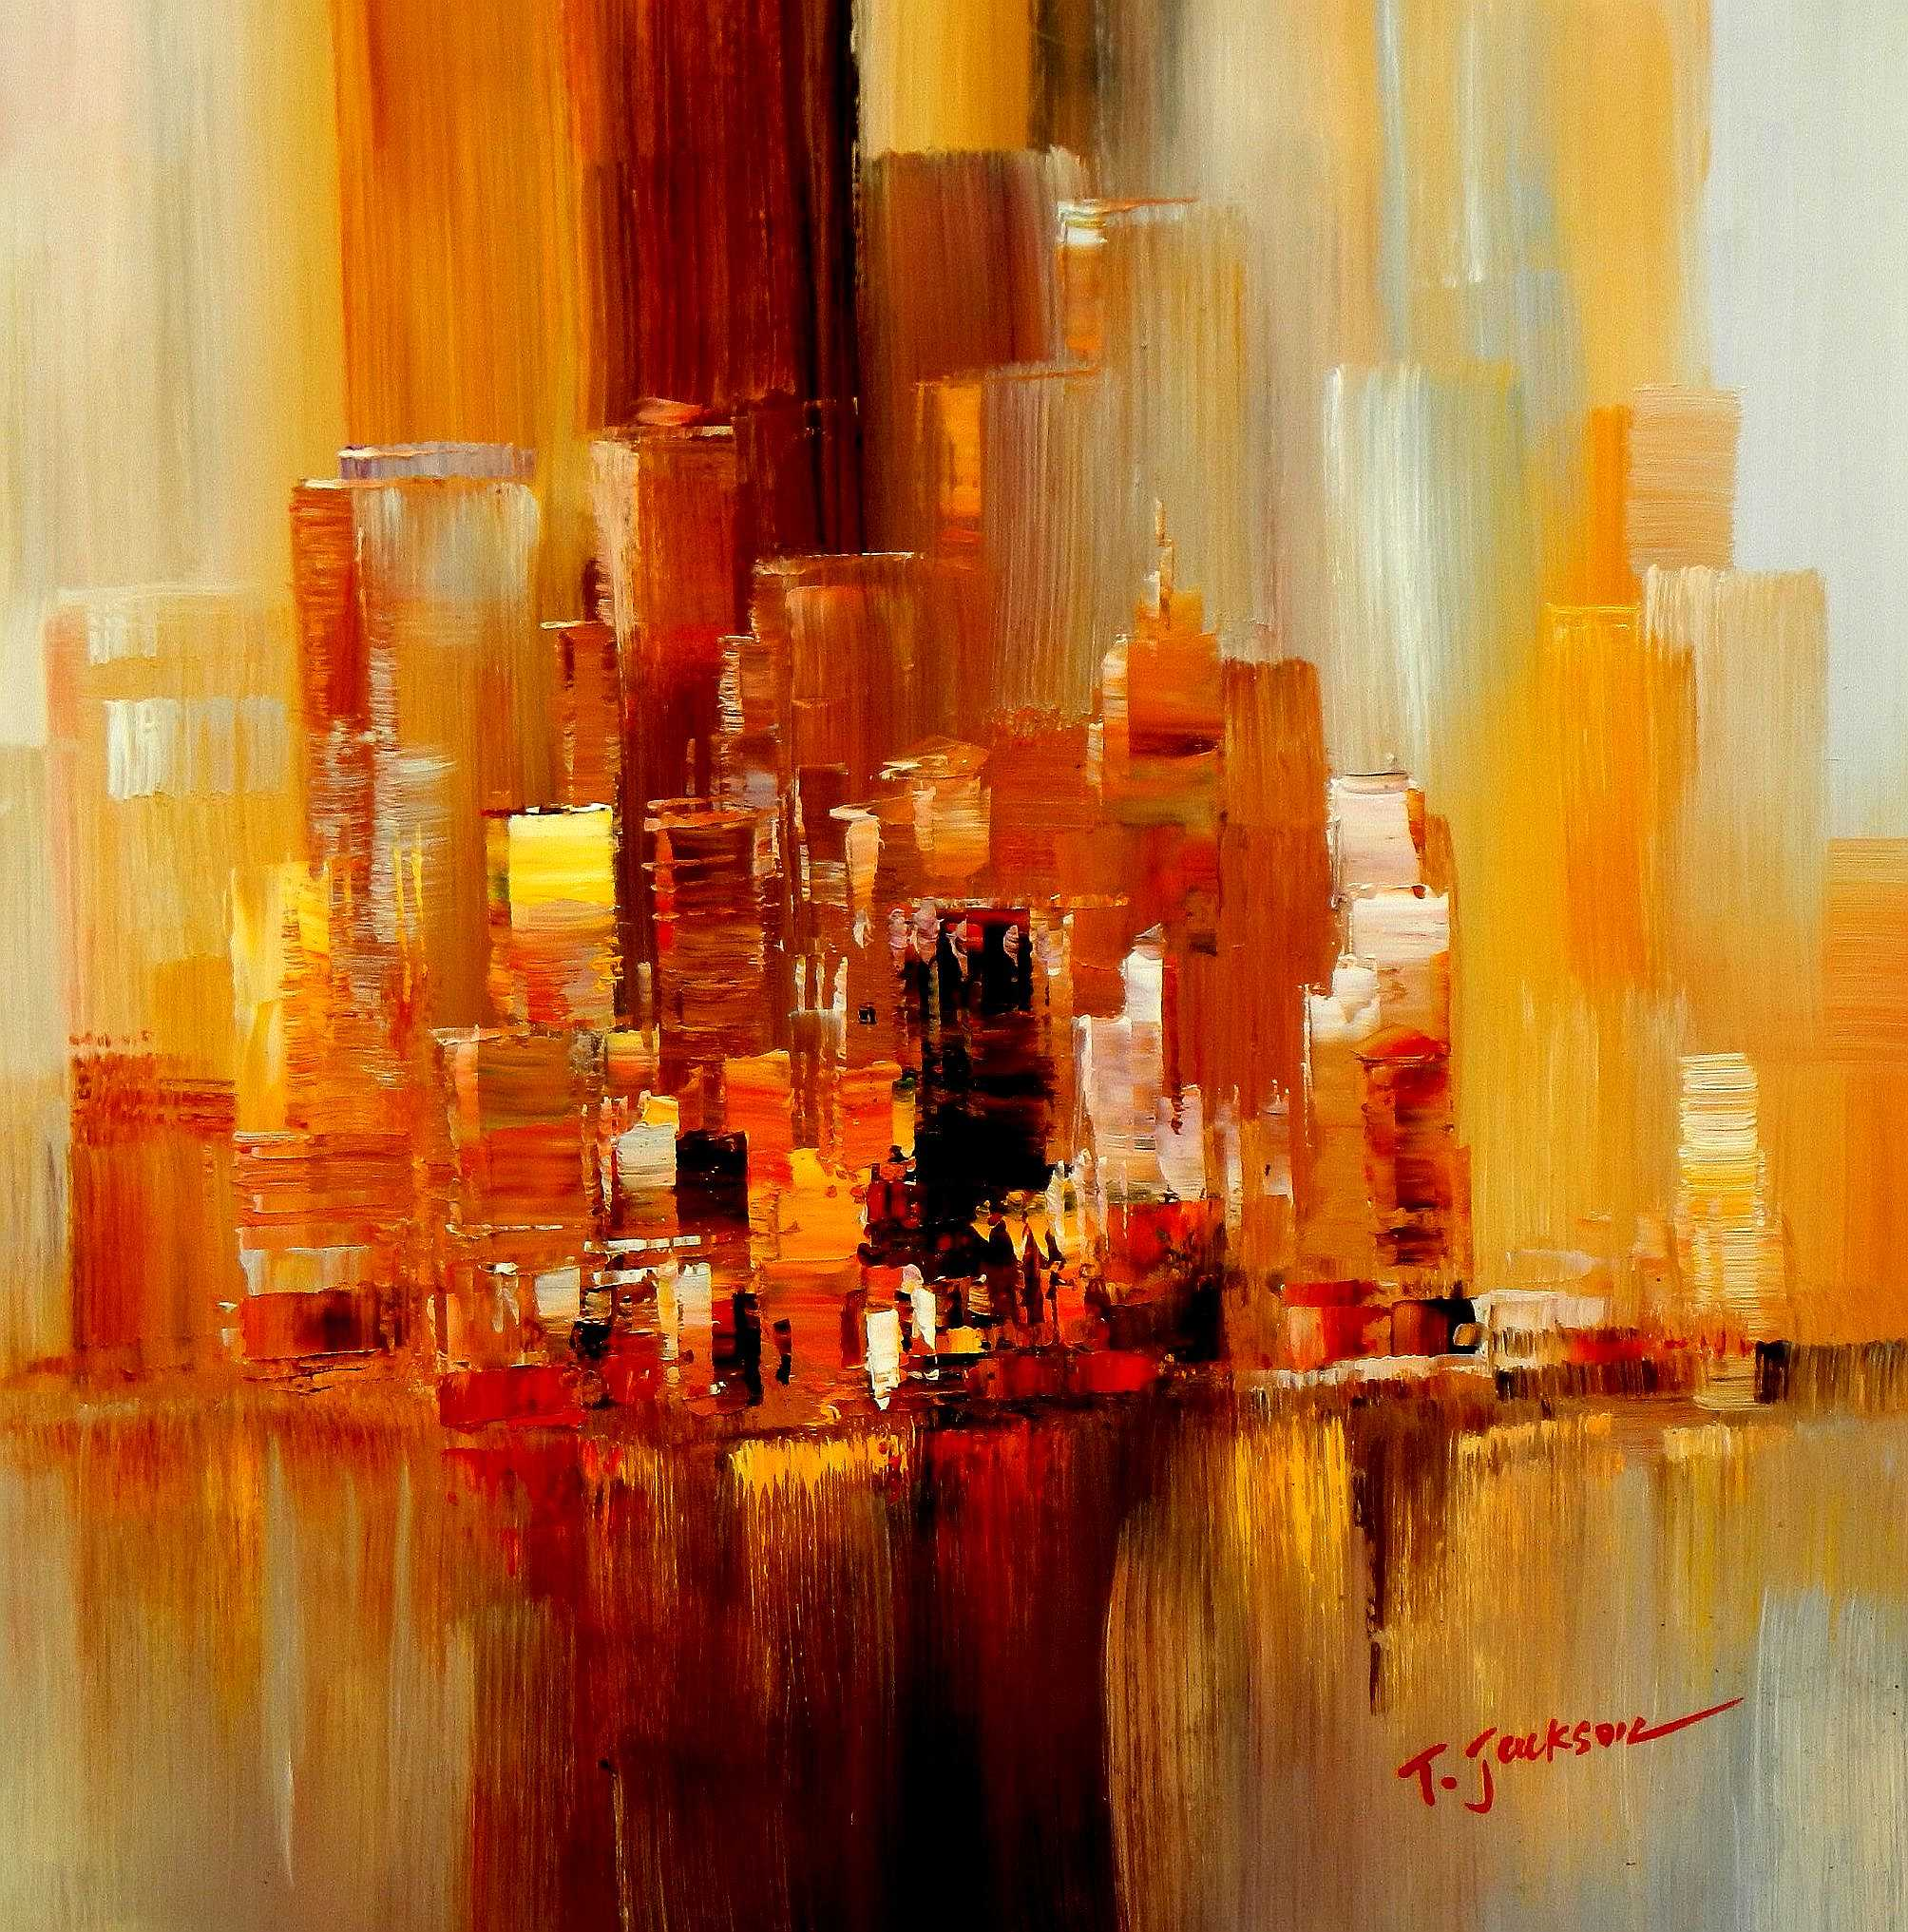 Abstrakt New York Manhattan Skyline im Herbst e95206 G 60x60cm abstraktes Ölbild